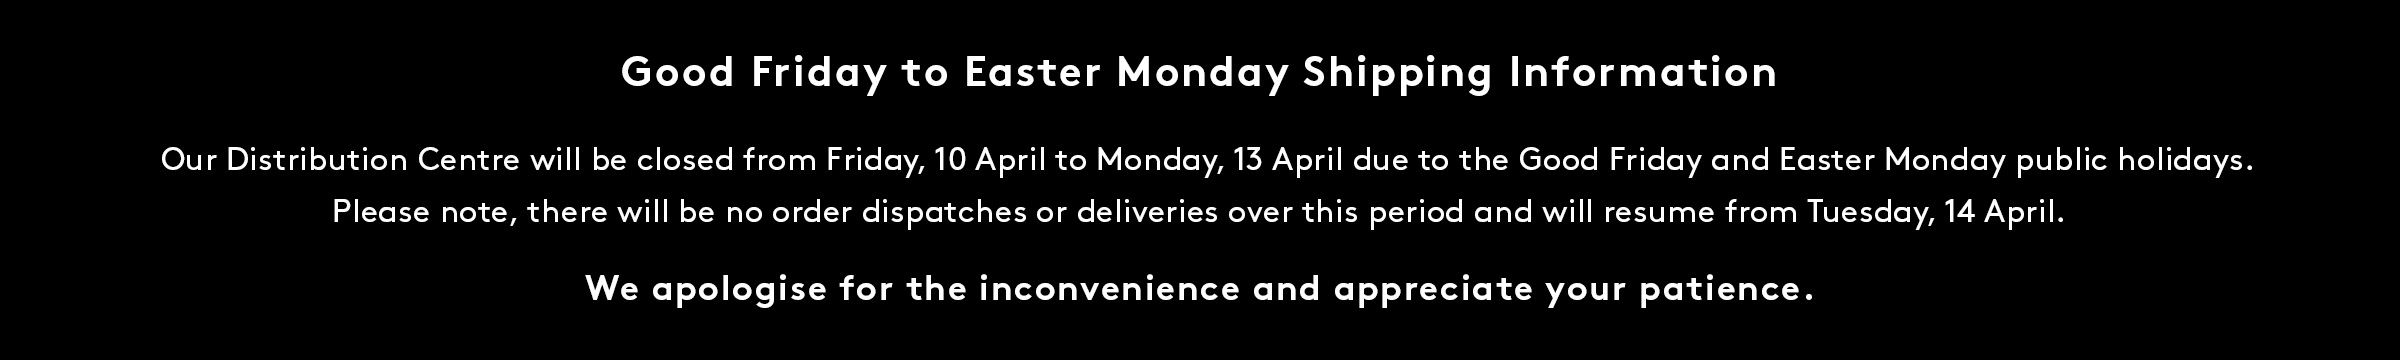 Good Friday Easter Monday Shipping Information